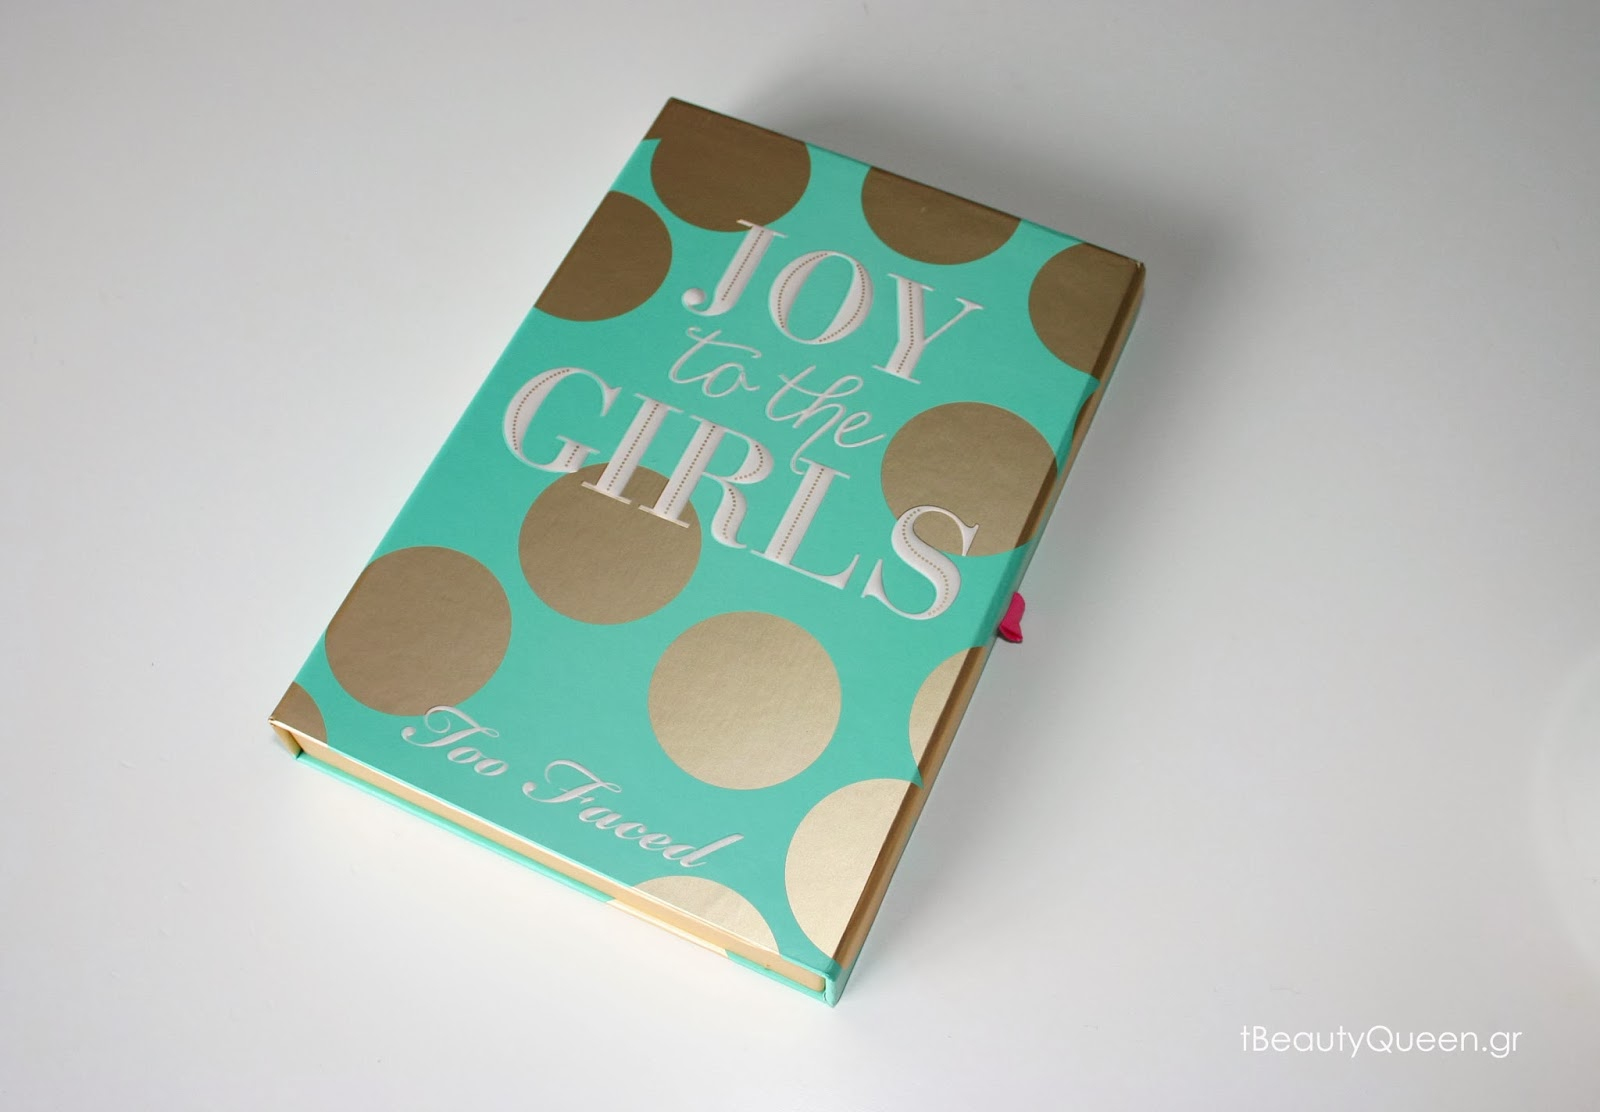 http://www.tbeautyqueen.gr/2014/02/joy-to-girls.html